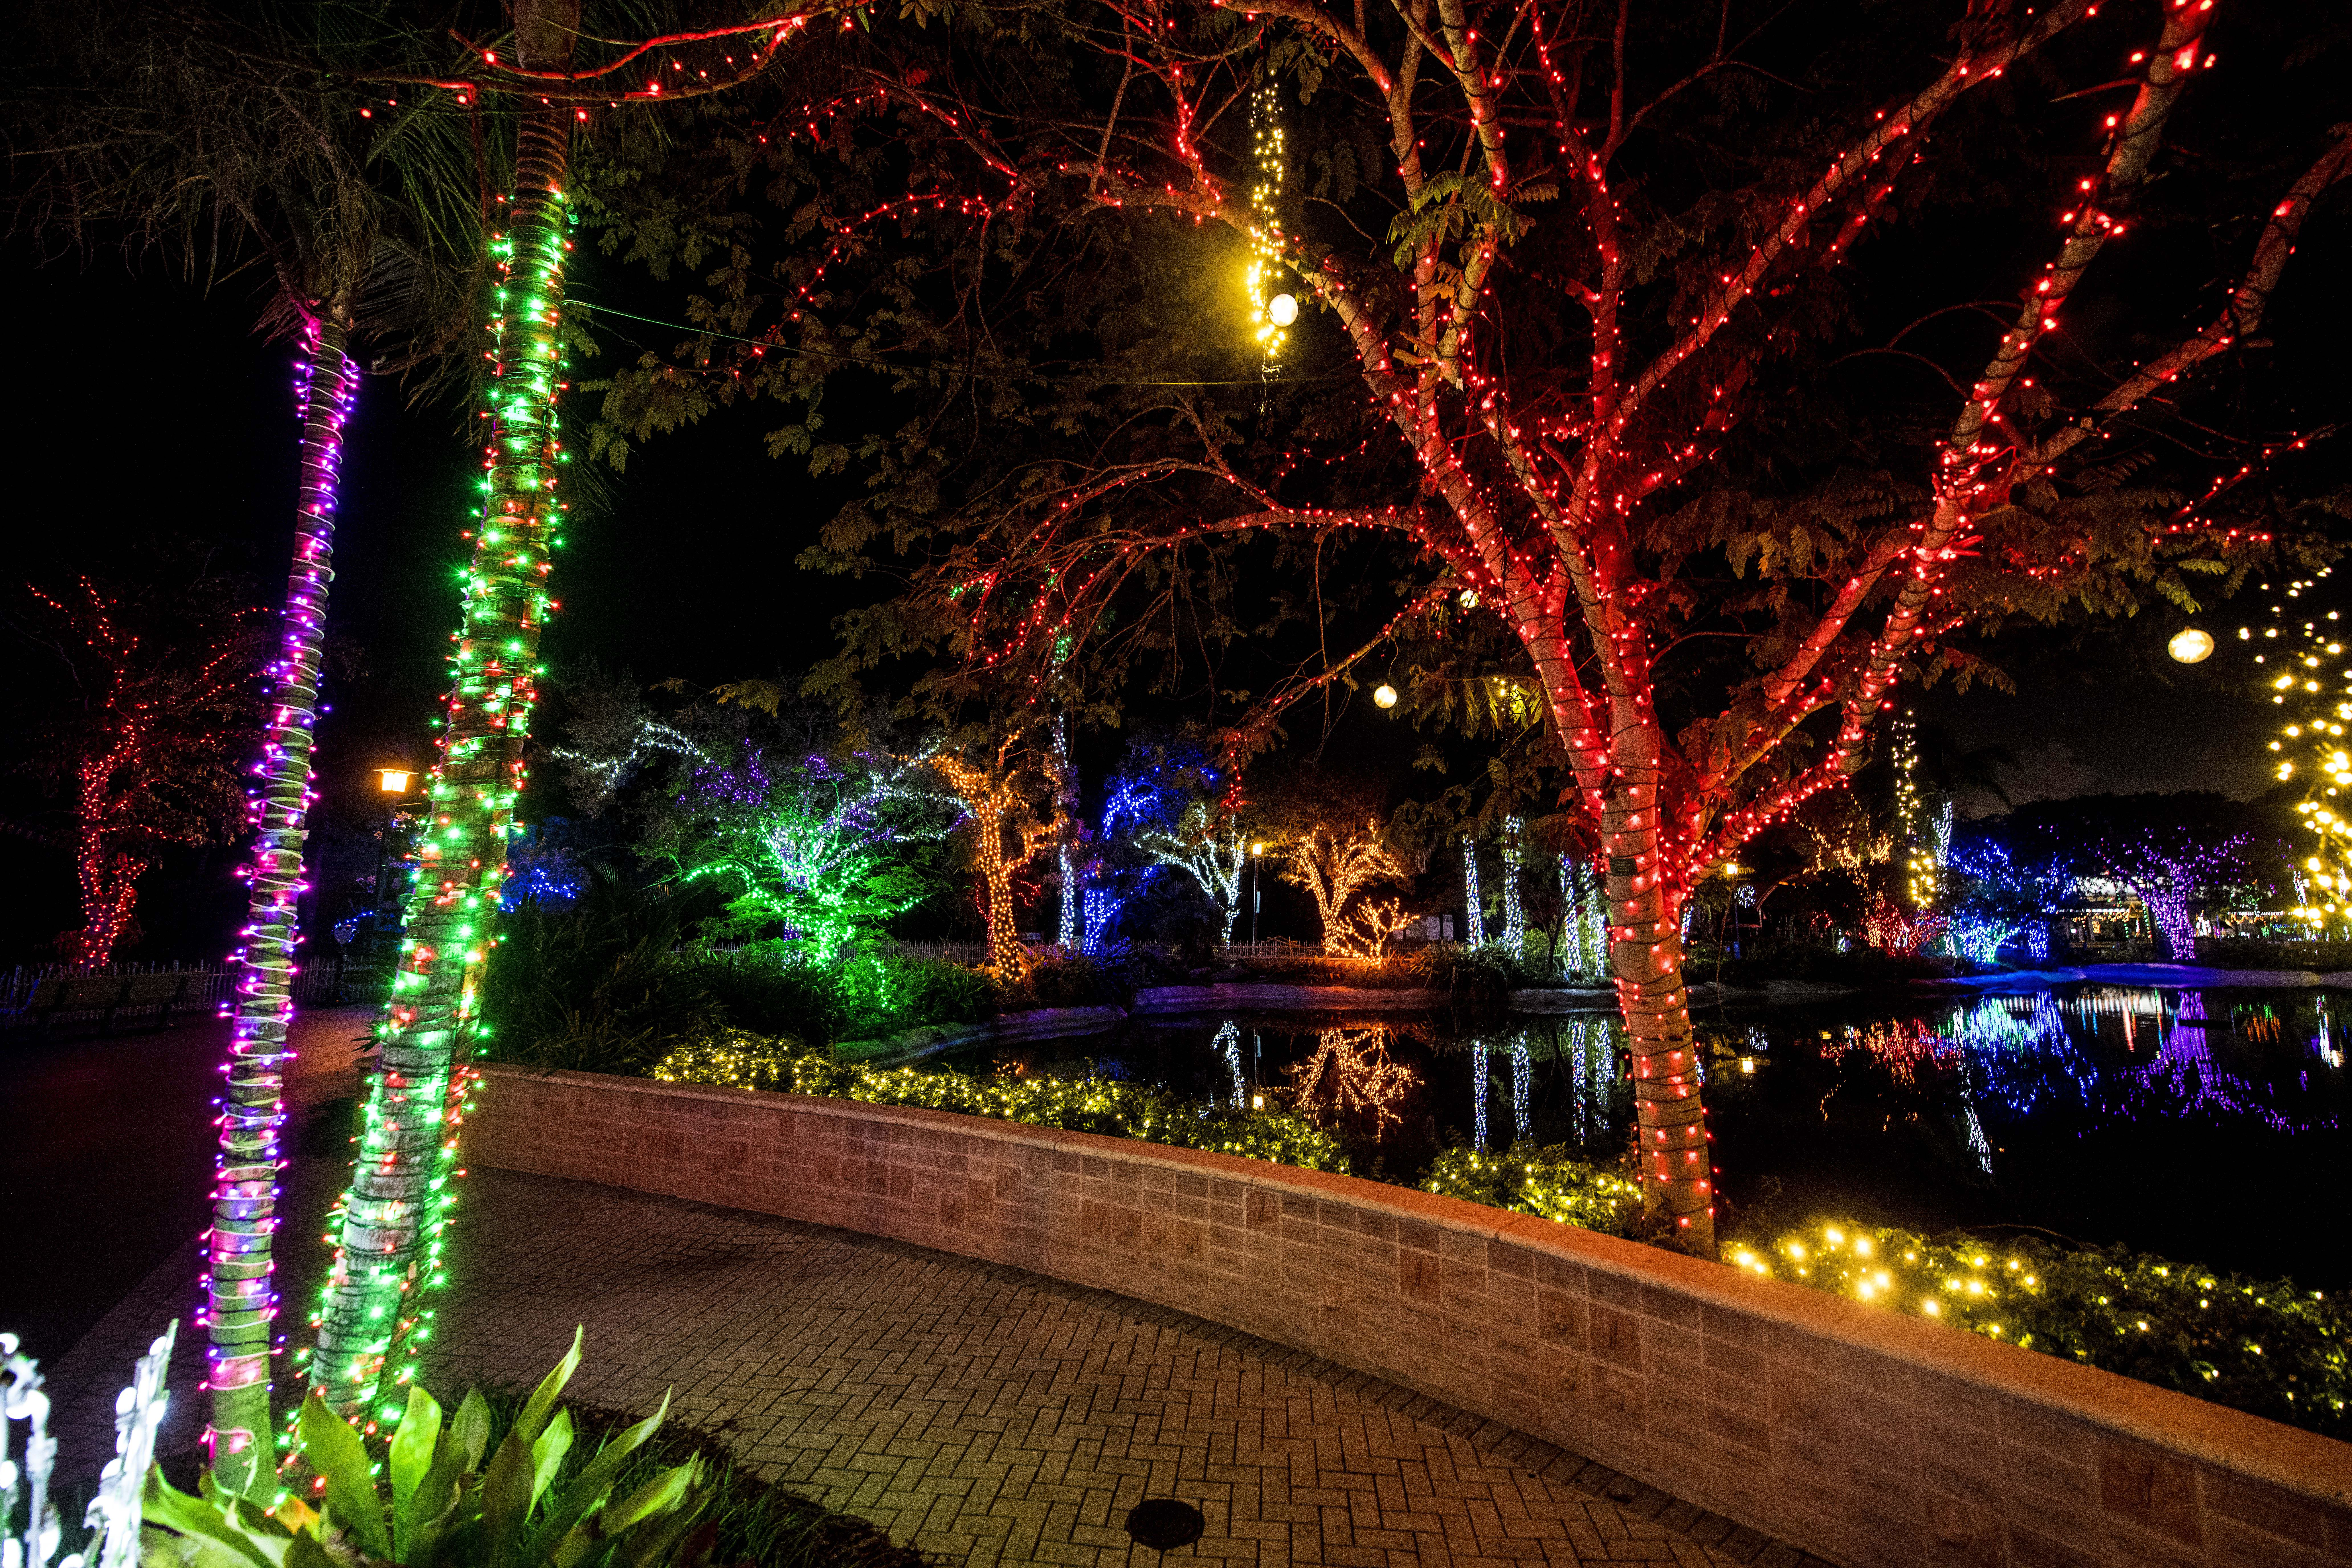 Things to Do for Christmas in Miami